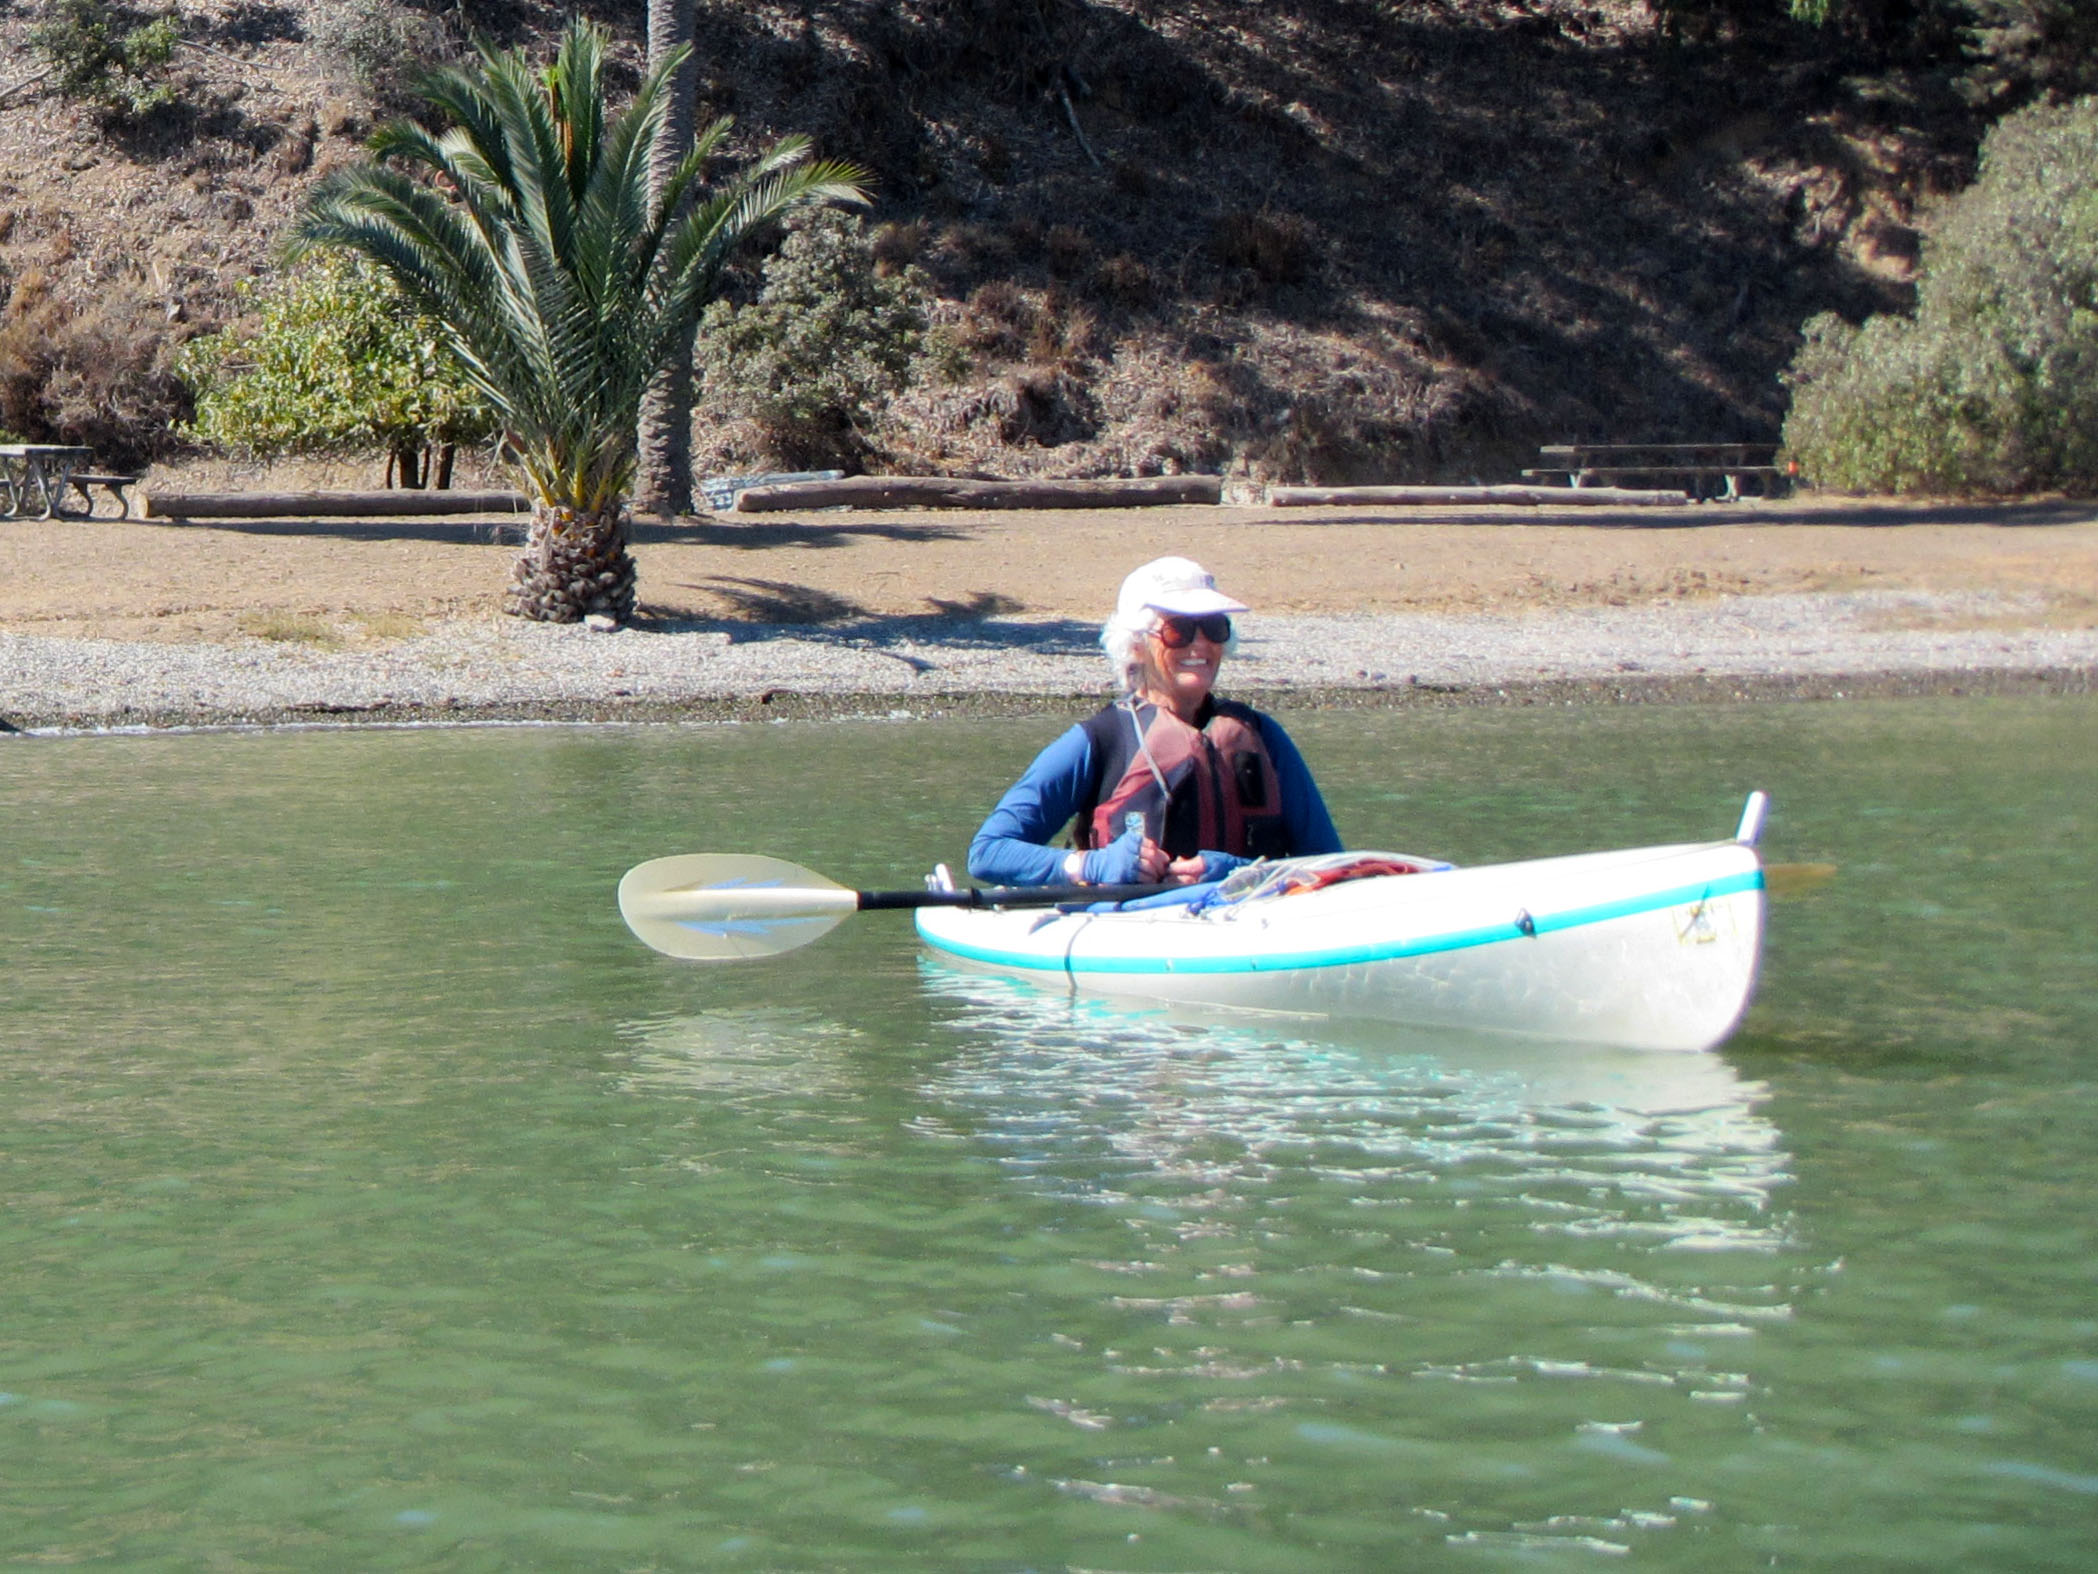 Woman in sunglasses smiling from single kayak, just off the beach